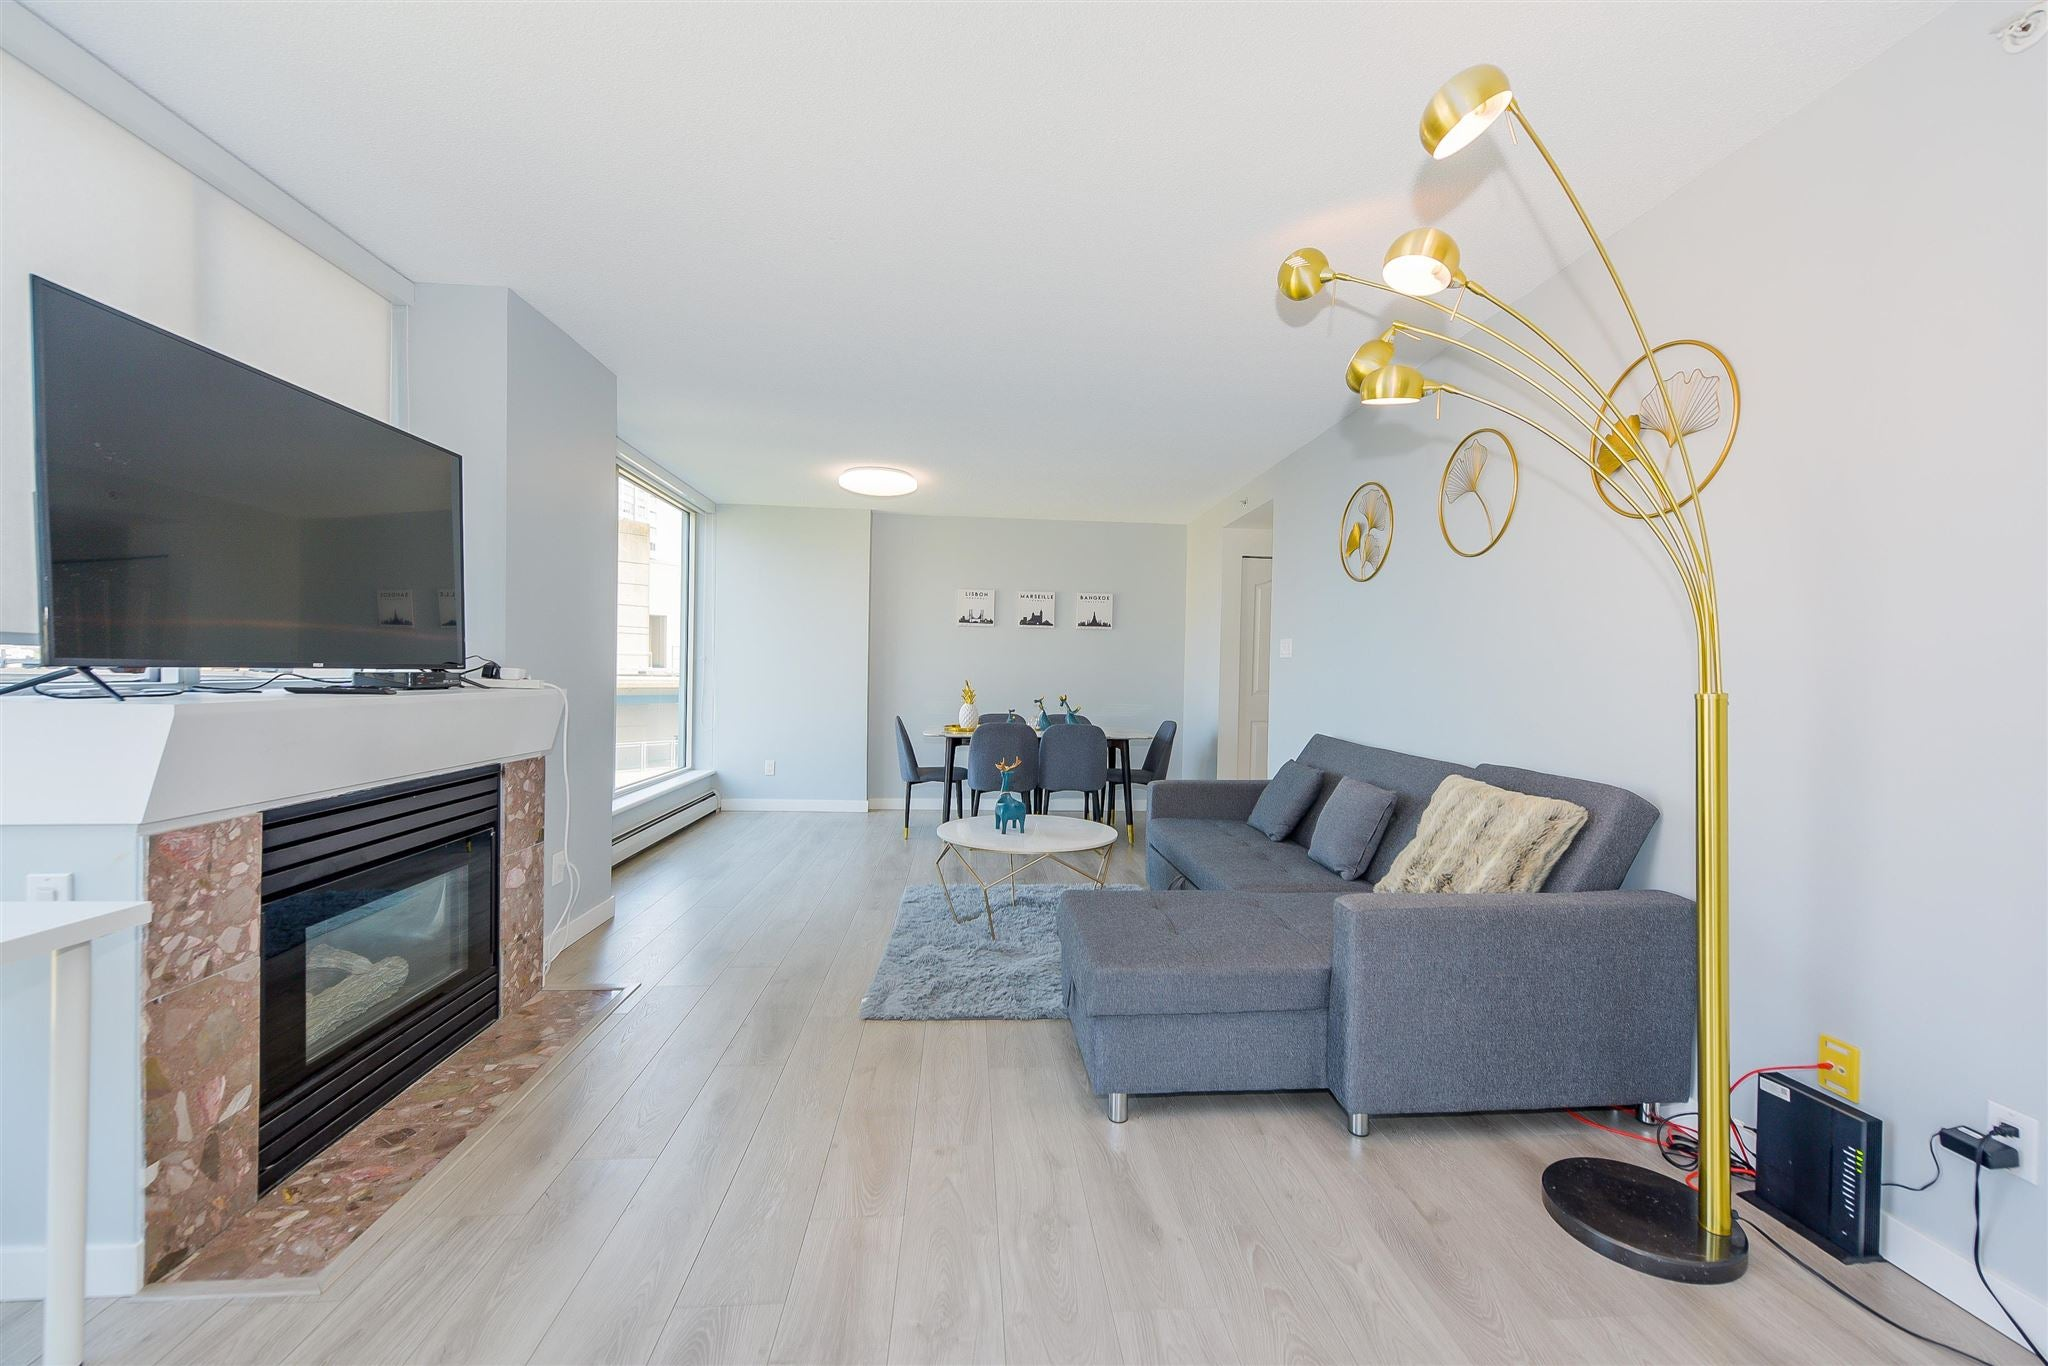 902 183 KEEFER PLACE - Downtown VW Apartment/Condo for sale, 2 Bedrooms (R2607144) - #1